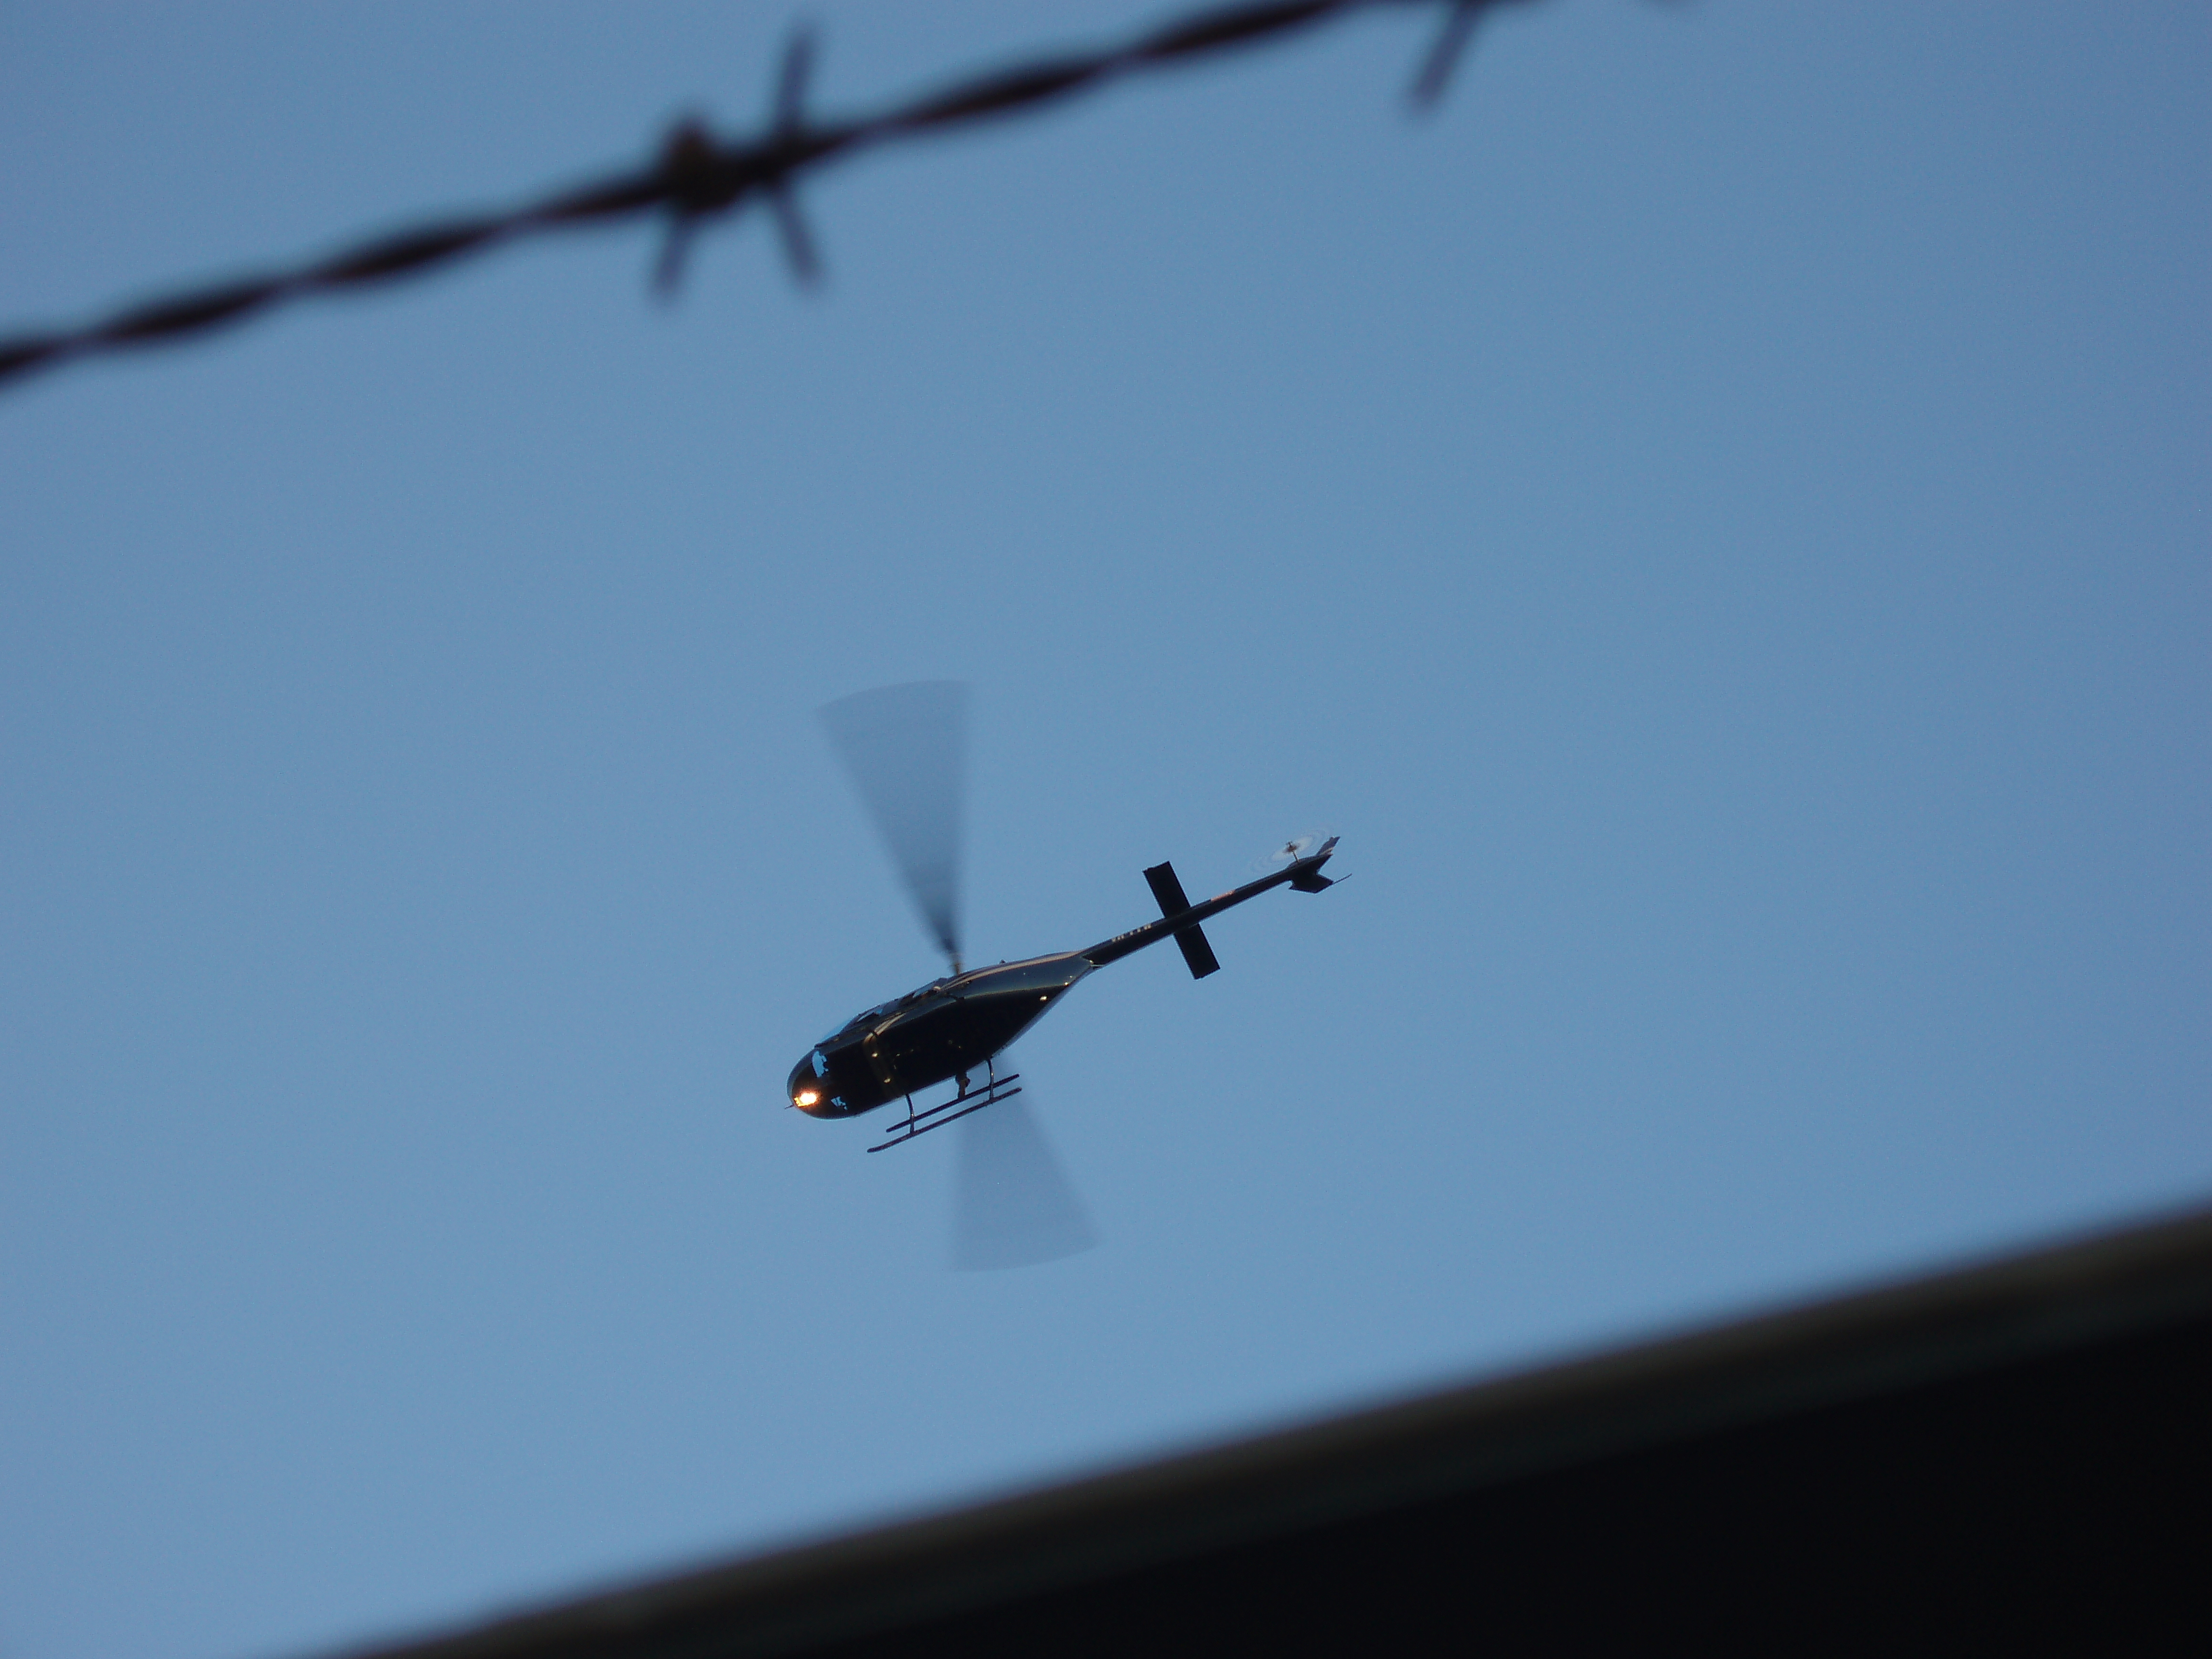 looking up towards a helecopter through a wire fence